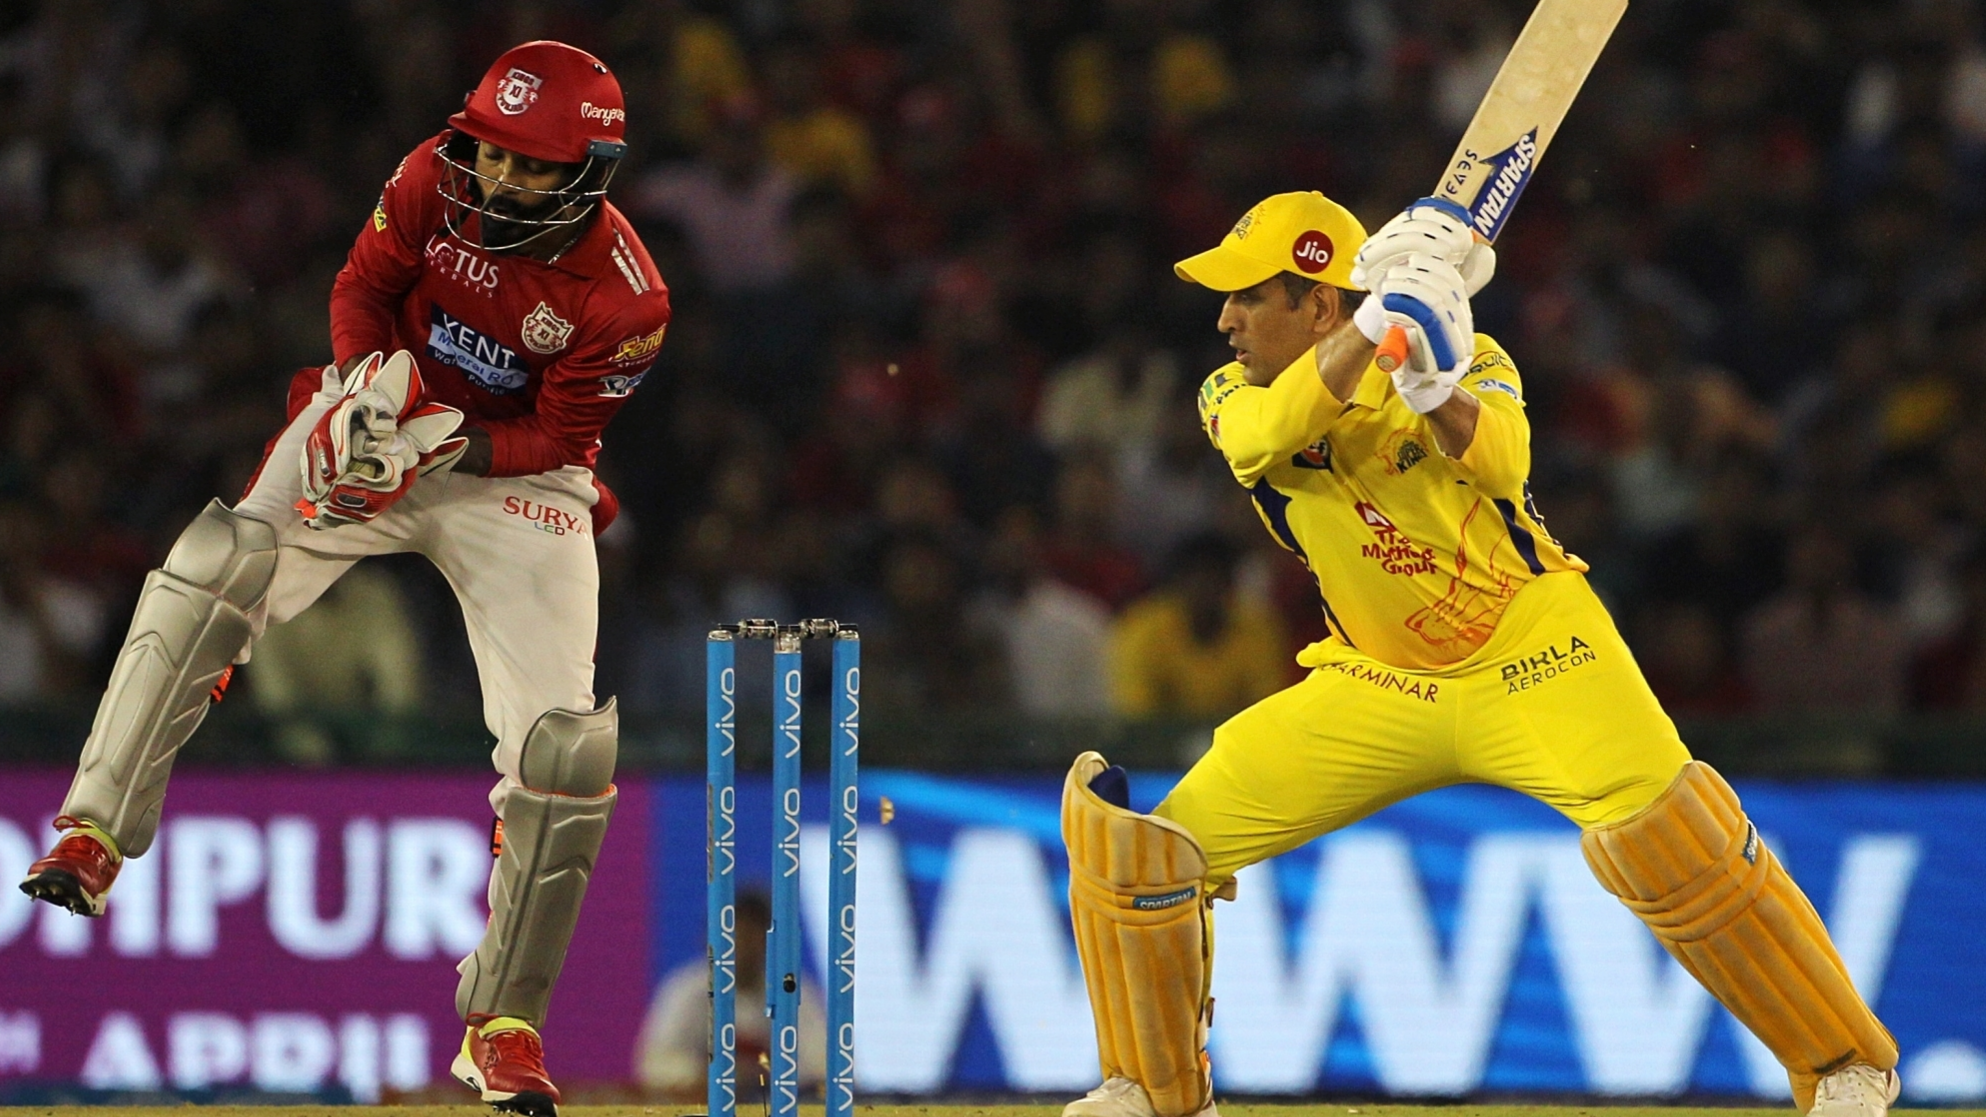 IPL 2018: Twitteratis  in awe of MS Dhoni's special innings despite CSK's defeat